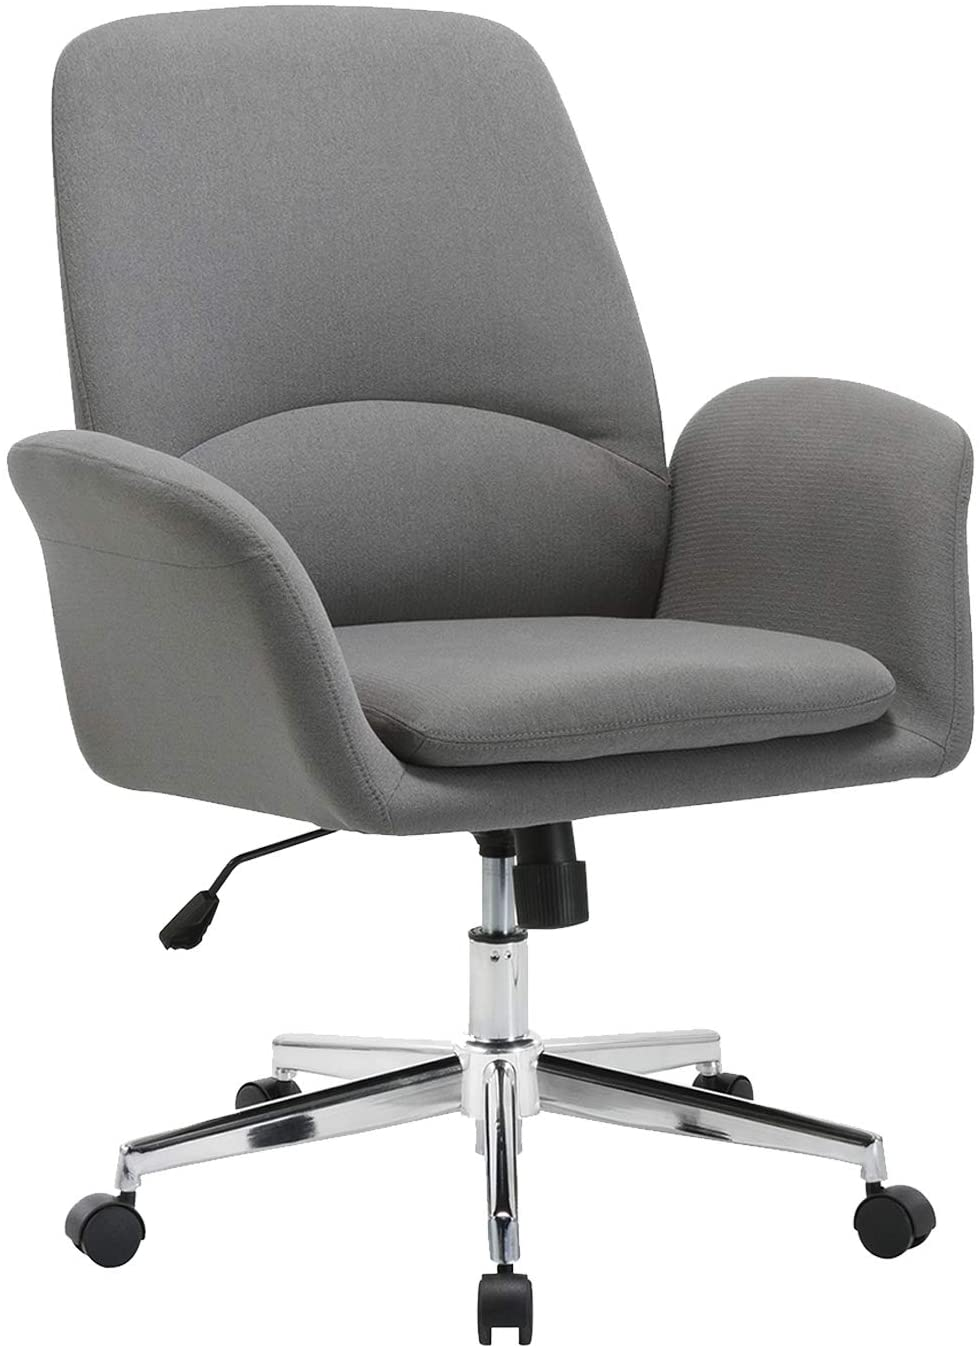 Nivigo Upholstered Home Office Chair